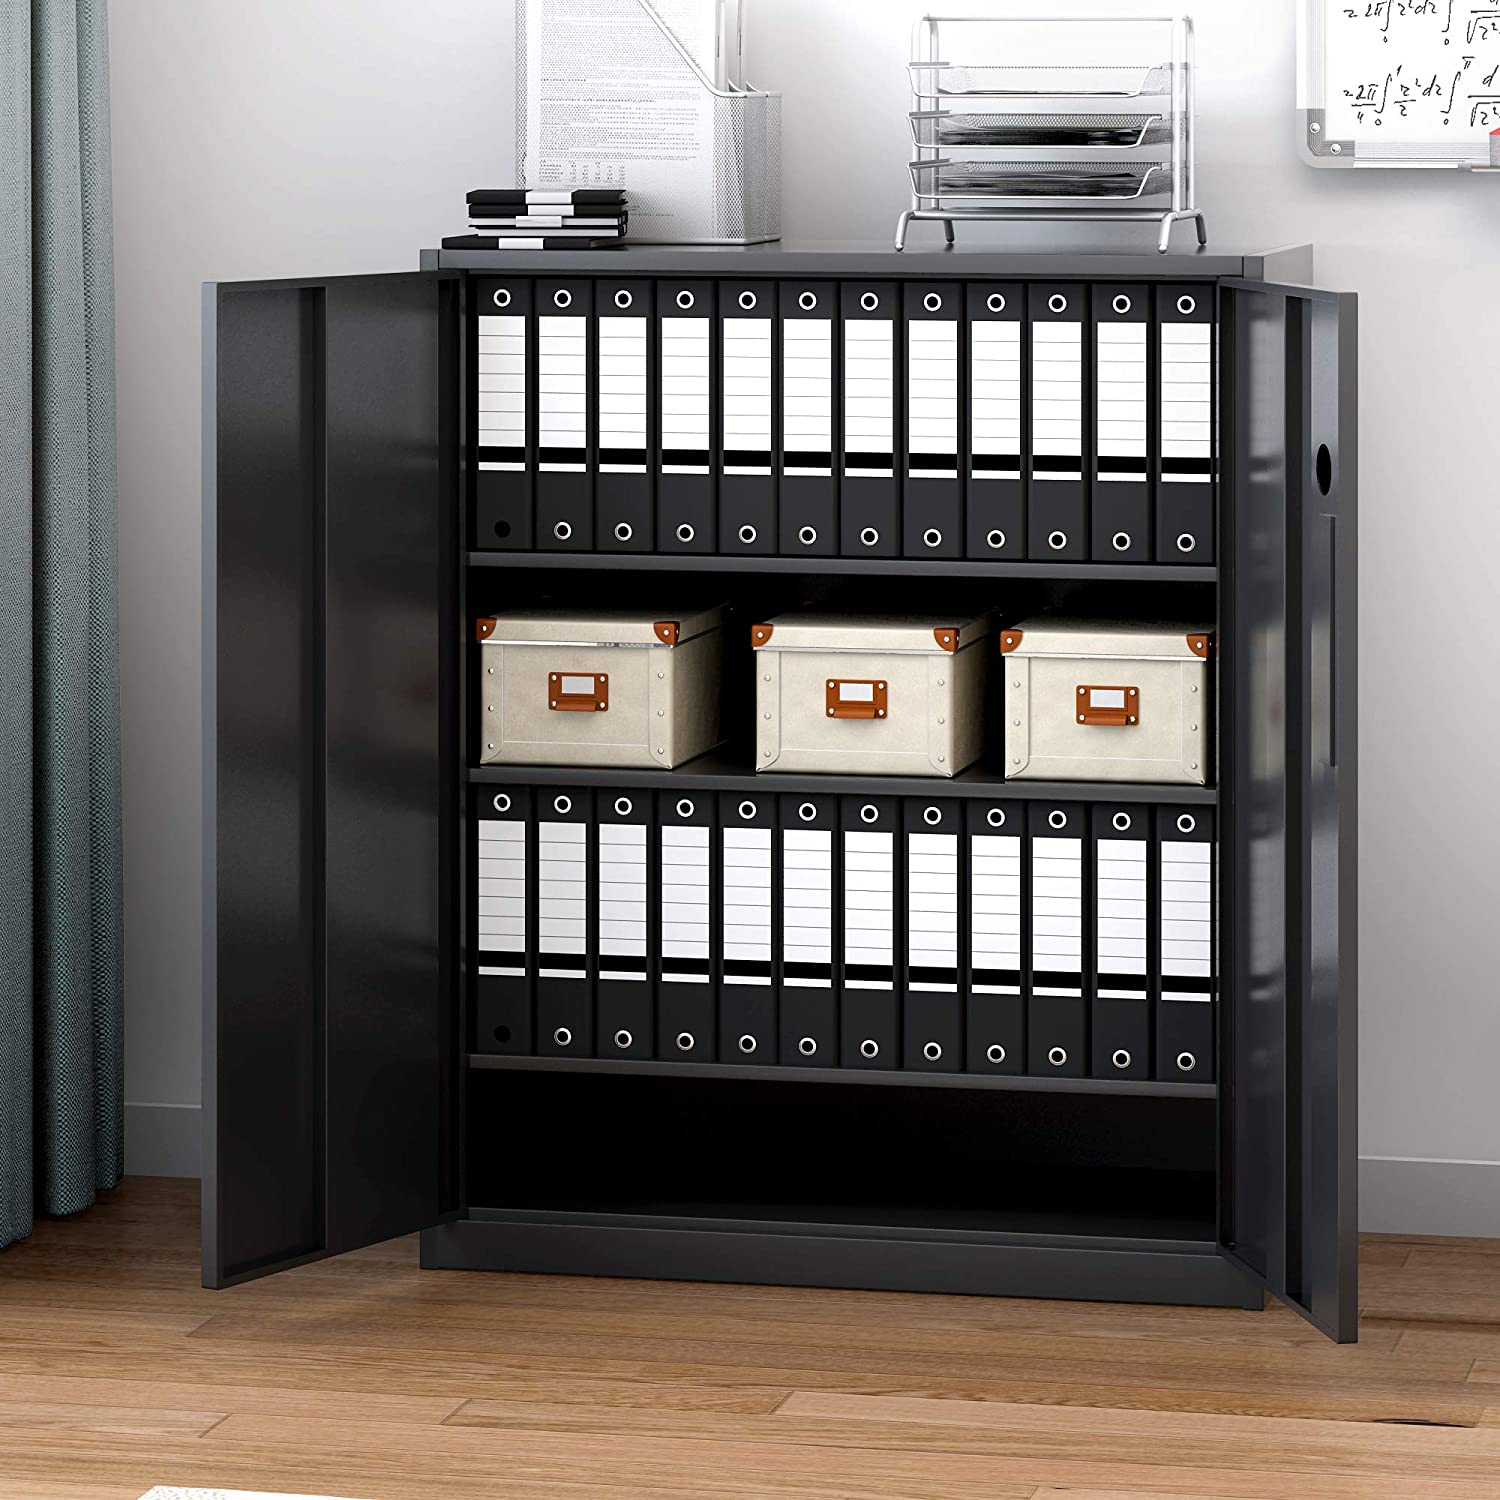 A4 Document Metal Filing Cabinet Steel 2 Door Locking Bookcase Shelving Unit with Keys Office Storage Cupboard 3 Tier a